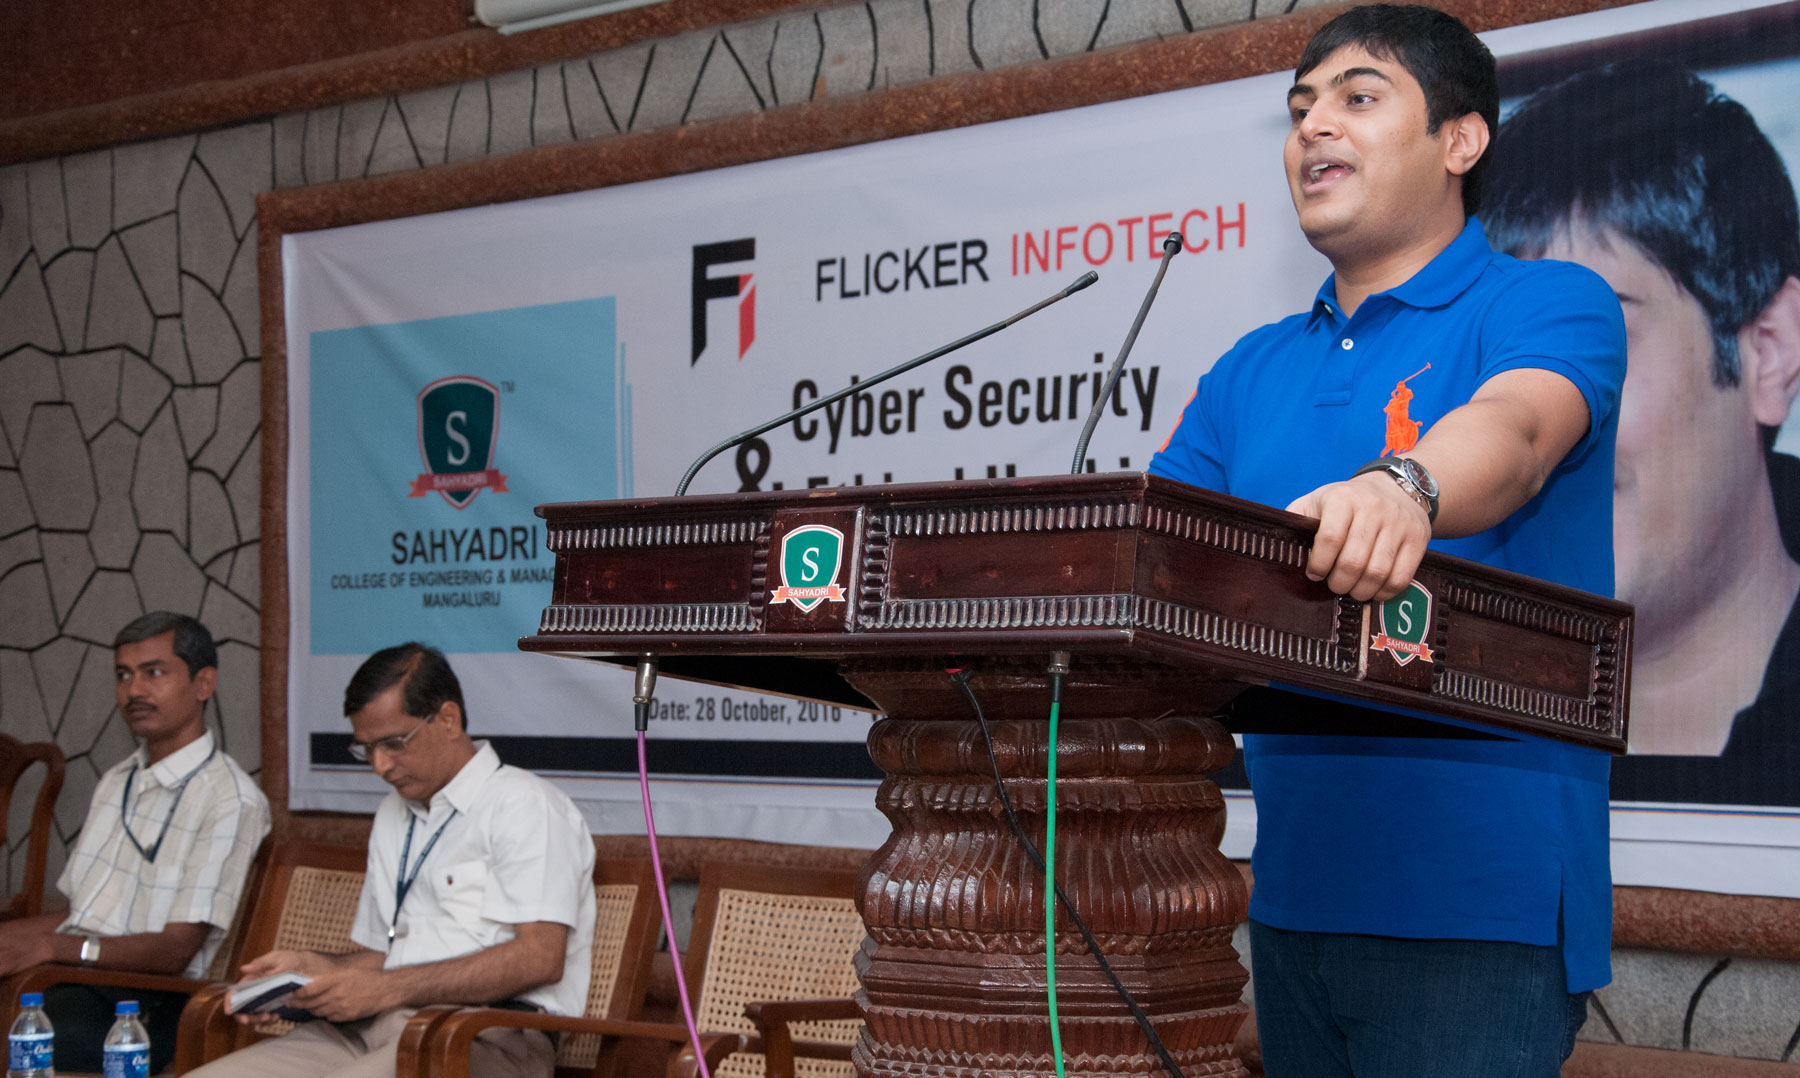 Flicker Infotech organizes a Workshop on Ethical Hacking facilitated by Ankit Fadia